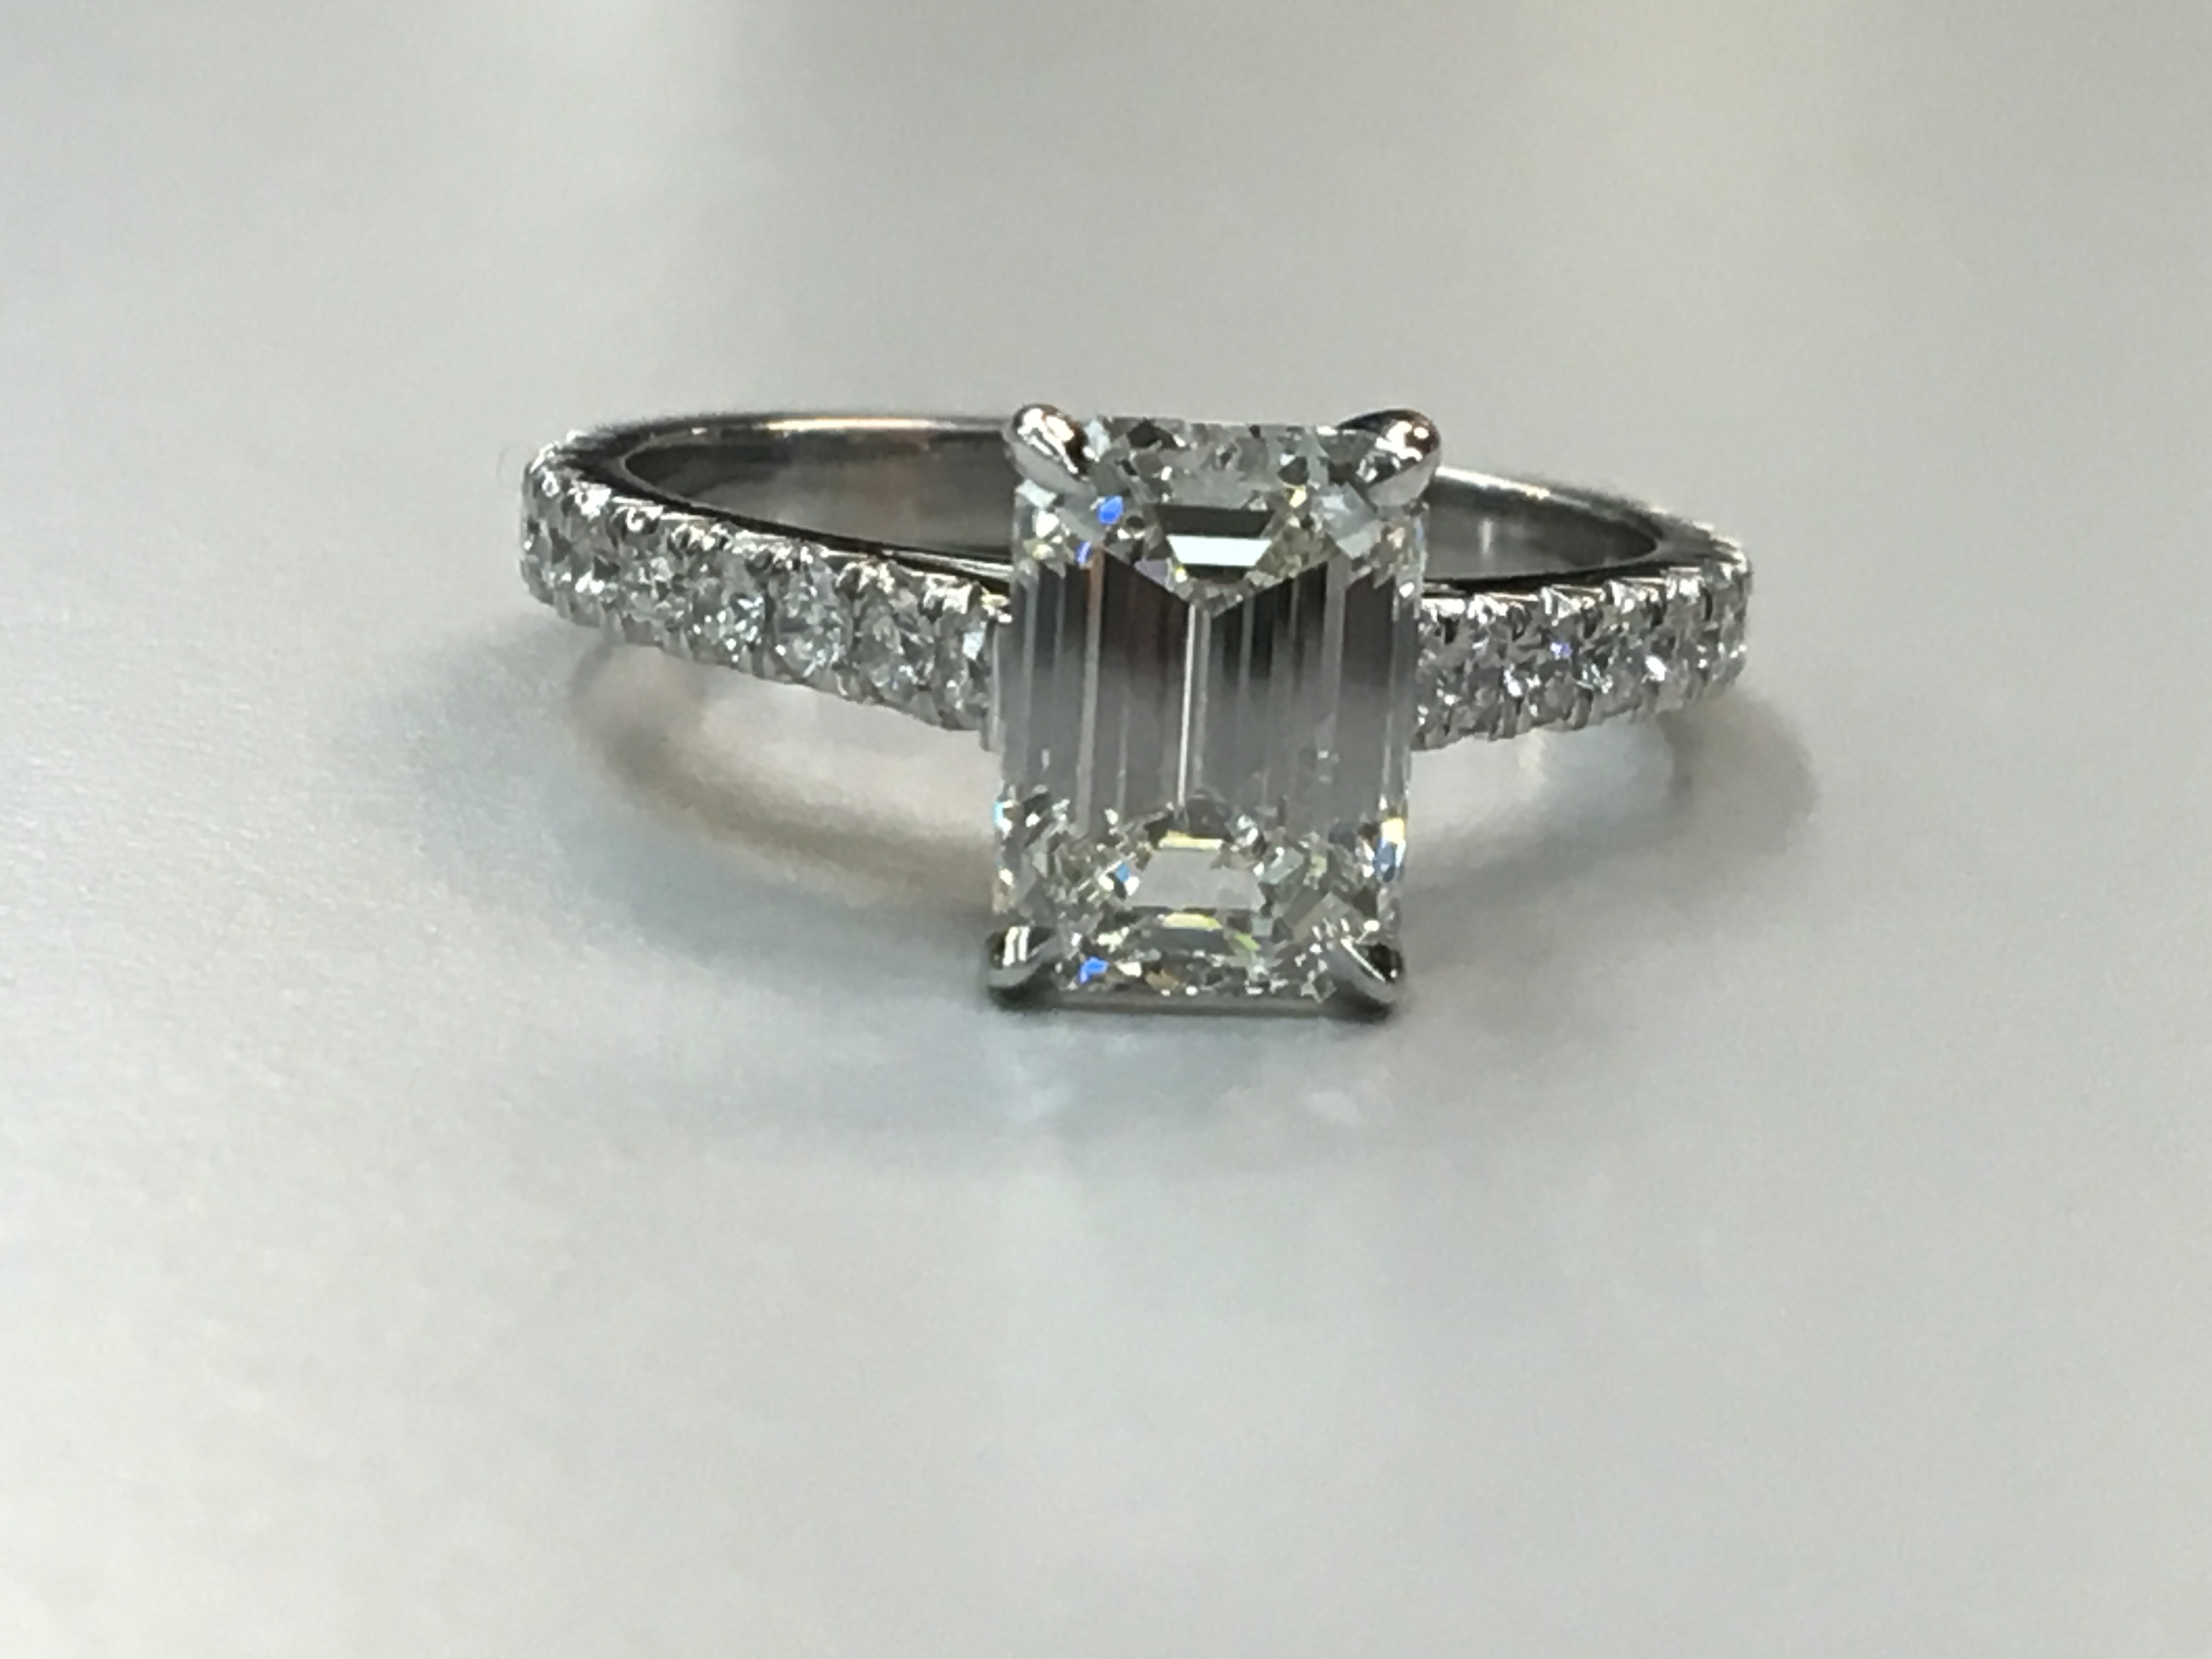 Engagement Rings | Cohen Bros. With Regard To Heart Shaped Engagement Rings With Tapered Baguette Side Stones (Gallery 19 of 25)